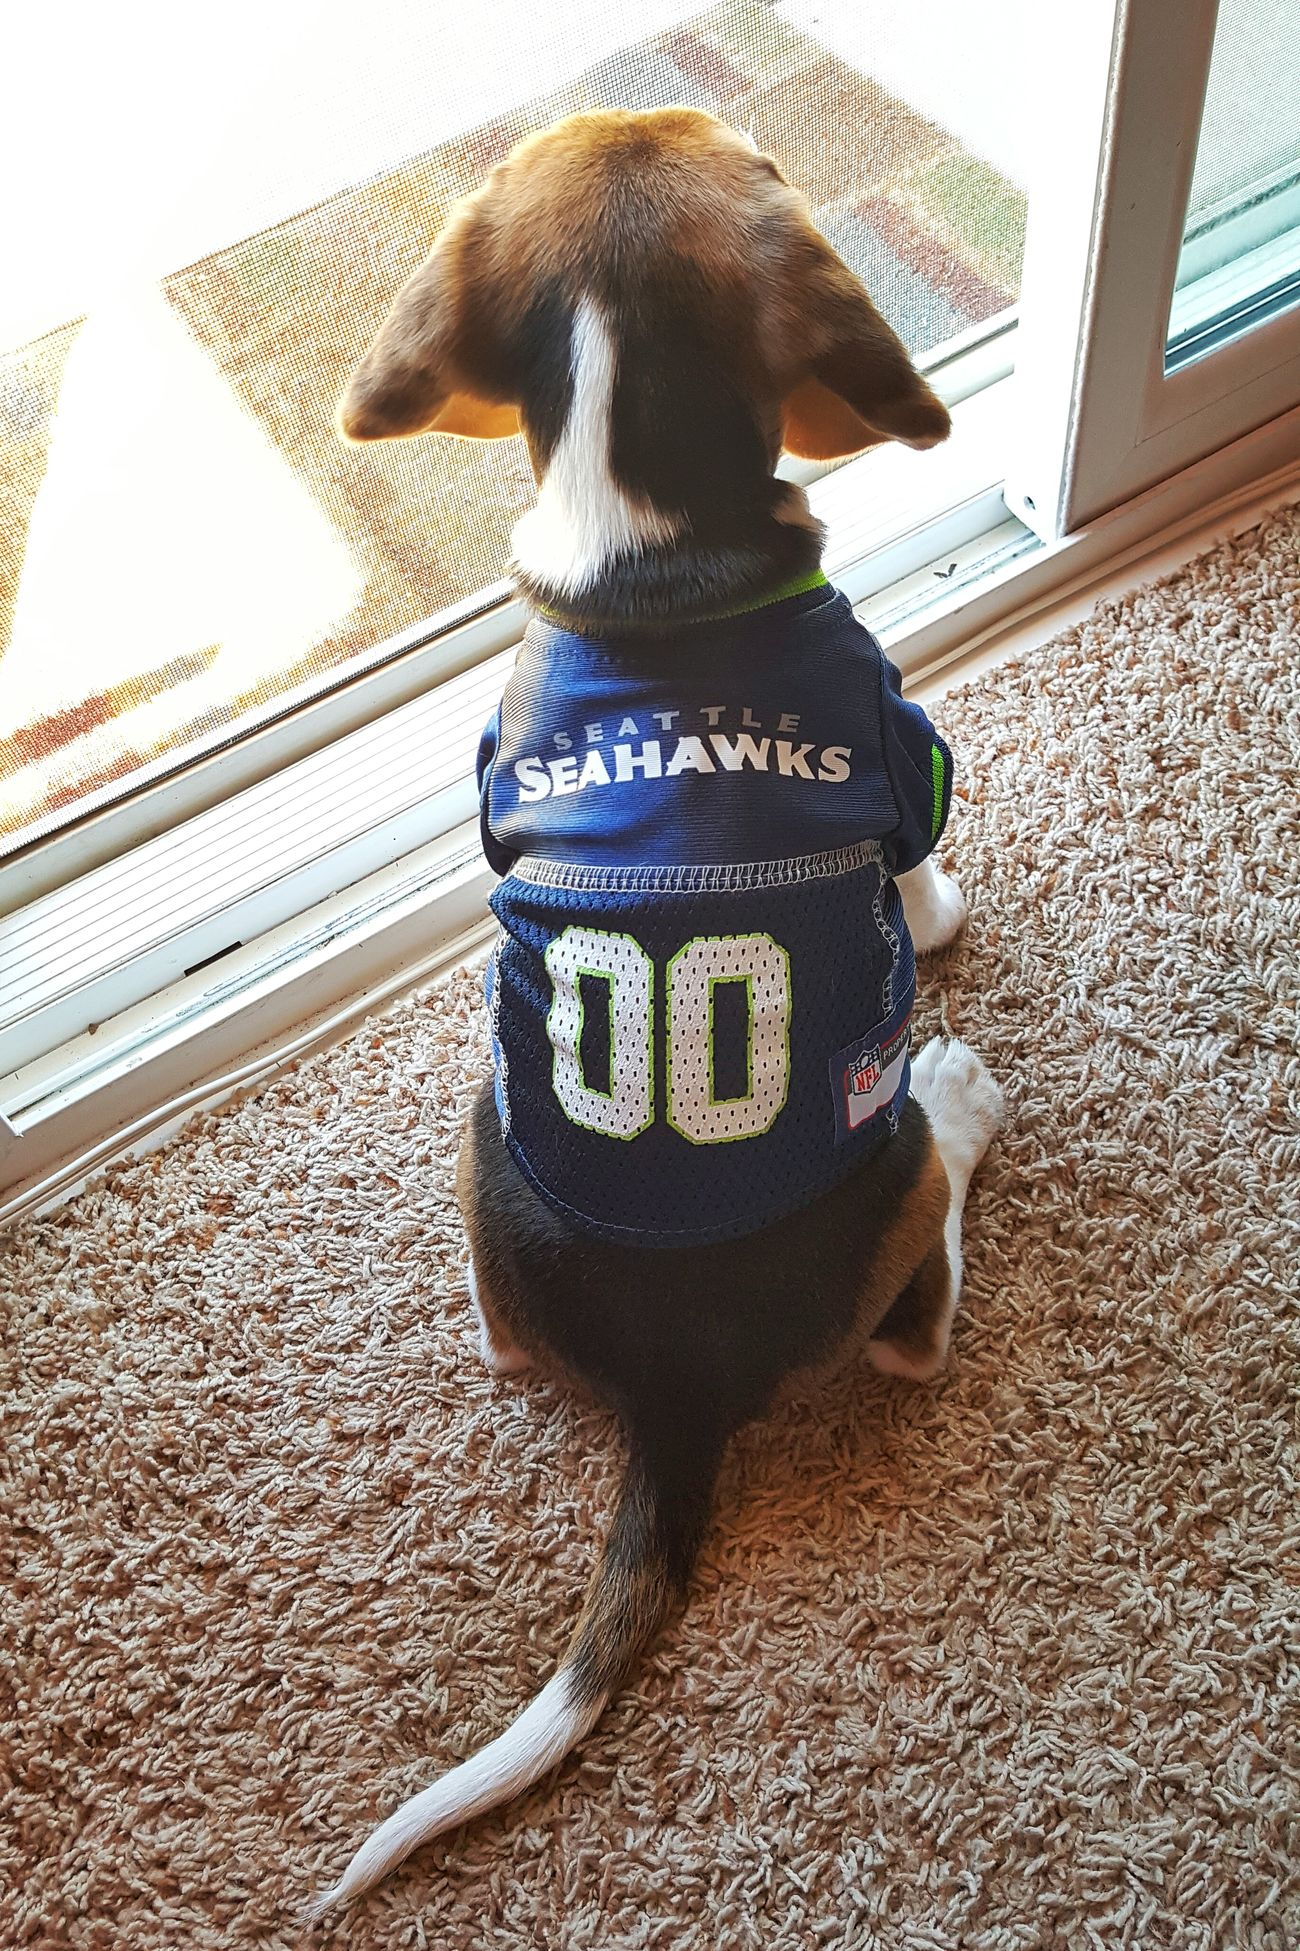 Waiting for the game to start. Seattle Seahawks Seahawkspride Seahawks 12th Man Seahawksbaby One Animal Pets Domestic Animals Sitting Photooftheday First Eyeem Photo PhonePhotography Beagle Beaglelovers Beagleoftheday Beagles  Beaglemania Dogs Of EyeEm Dogoftheday Doglover Beaglestagram Beaglepuppy Beaglelove Beagles  Dog Love